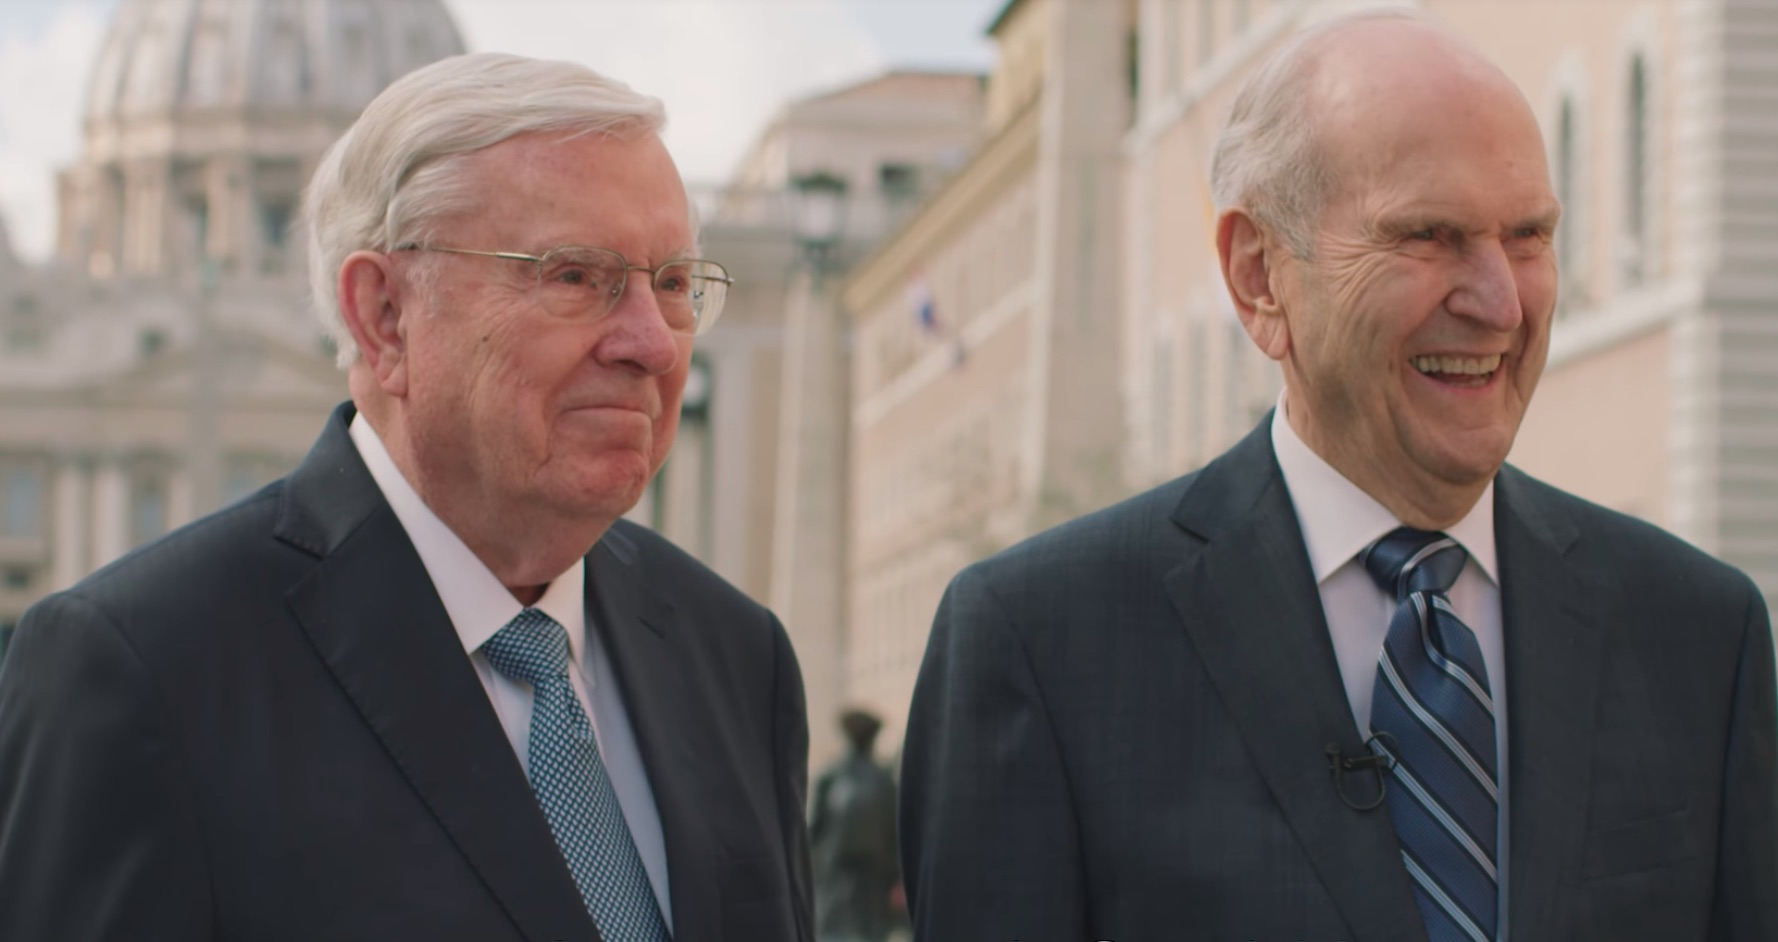 President M. Russell Ballard, left, and President Russell M. Nelson, right, talk in a Church News video about meeting with Pope Francis.